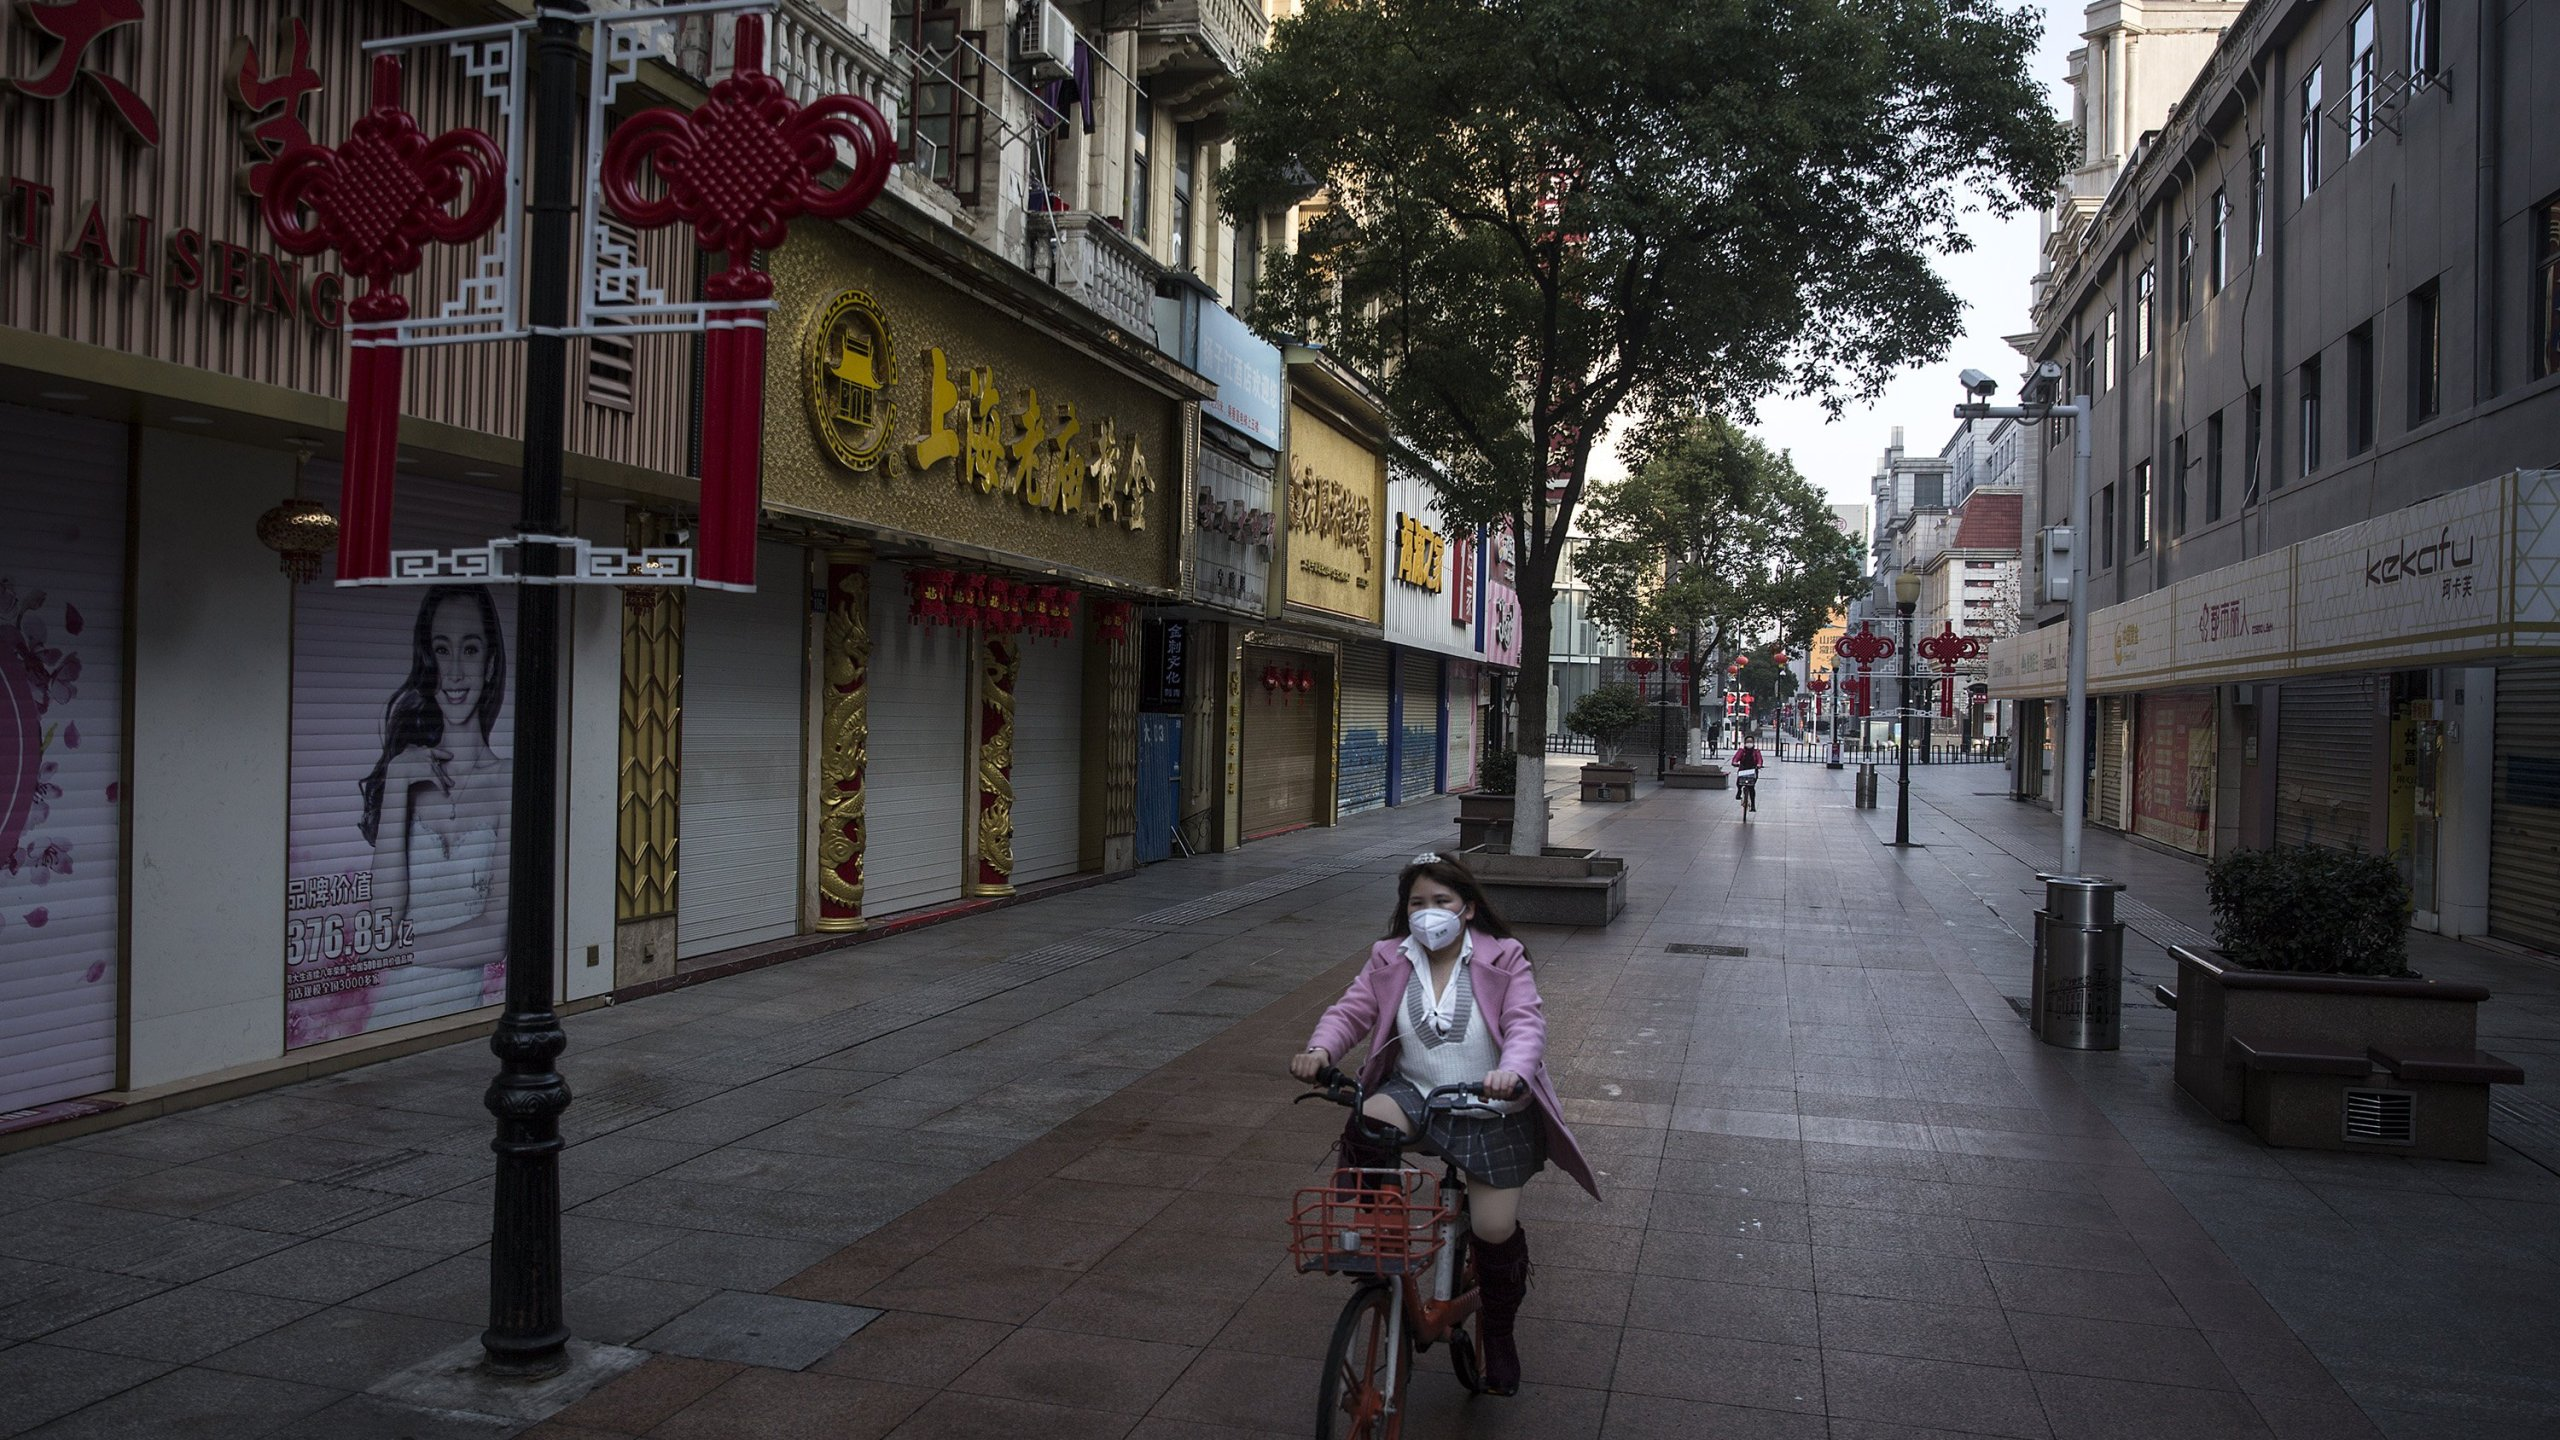 A women wears a protective mask as she cycles past empty businesses on a street in Wuhan, Hubei province, China, on Feb. 13, 2020. Flights, trains and public transport including buses, subway and ferry services have been closed for 22 days. (Credit: Stringe/Getty Images)